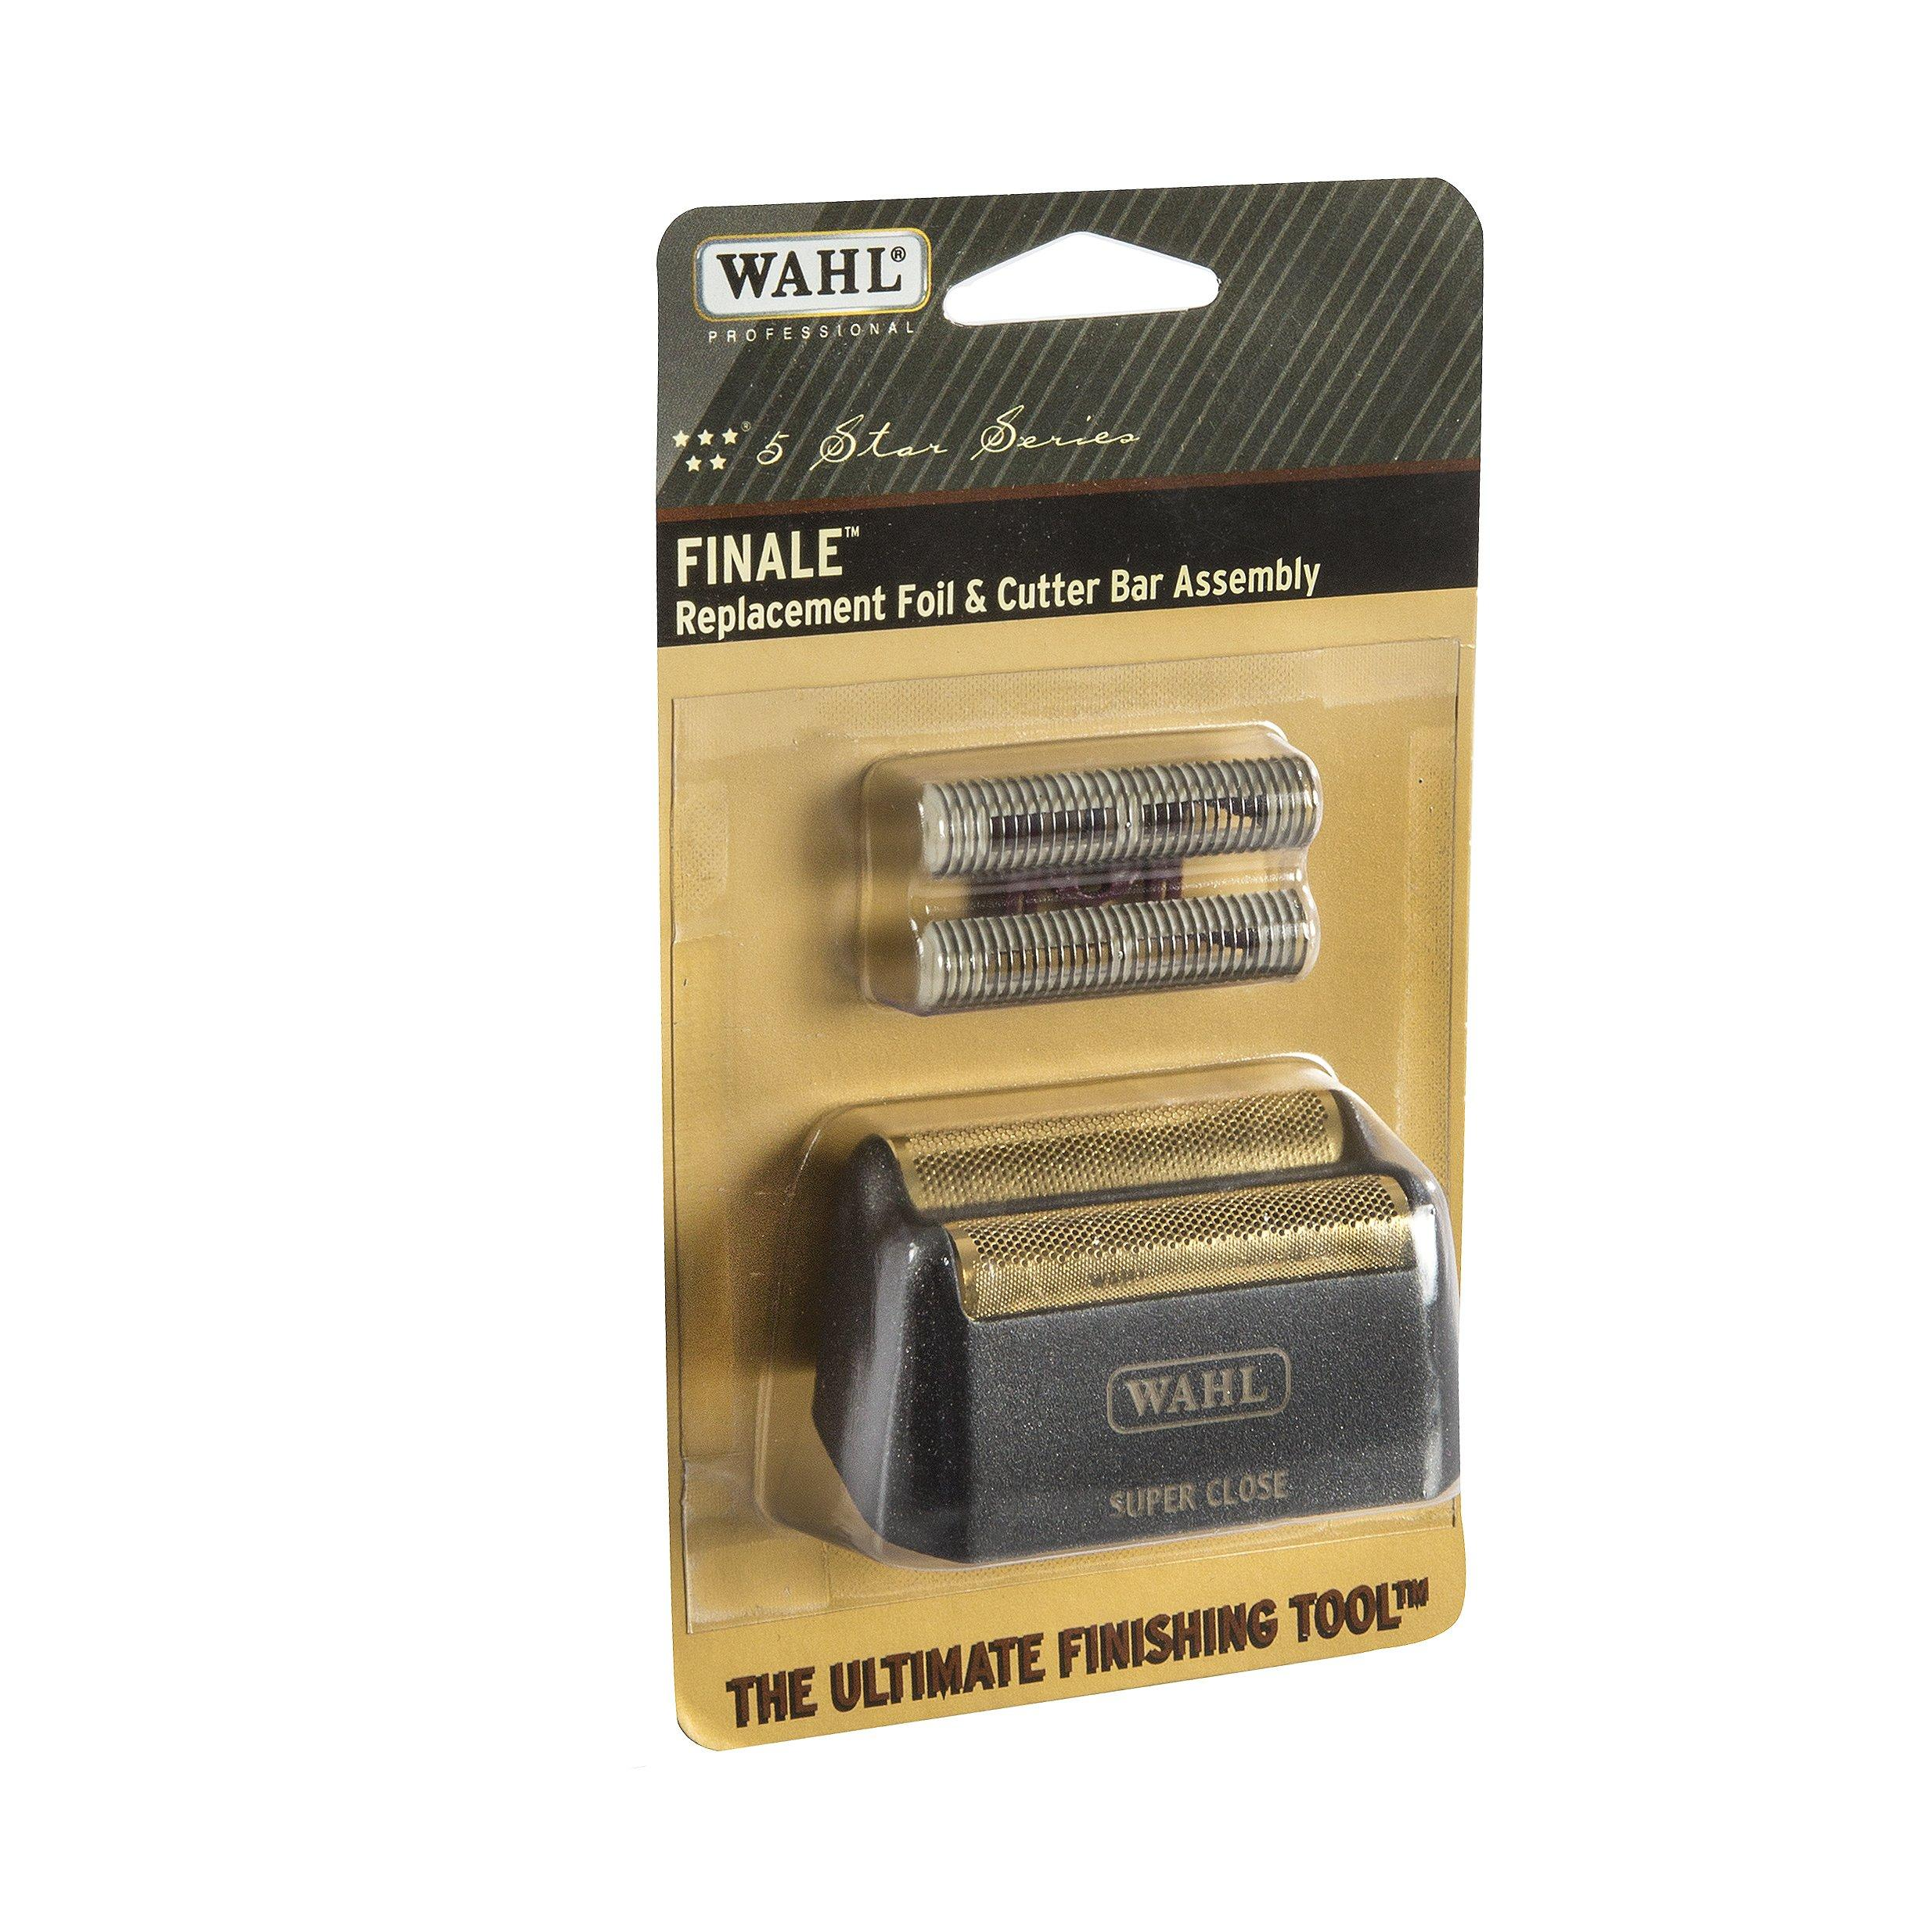 Wahl Professional 5-Star Series Finale Replacement Foil and